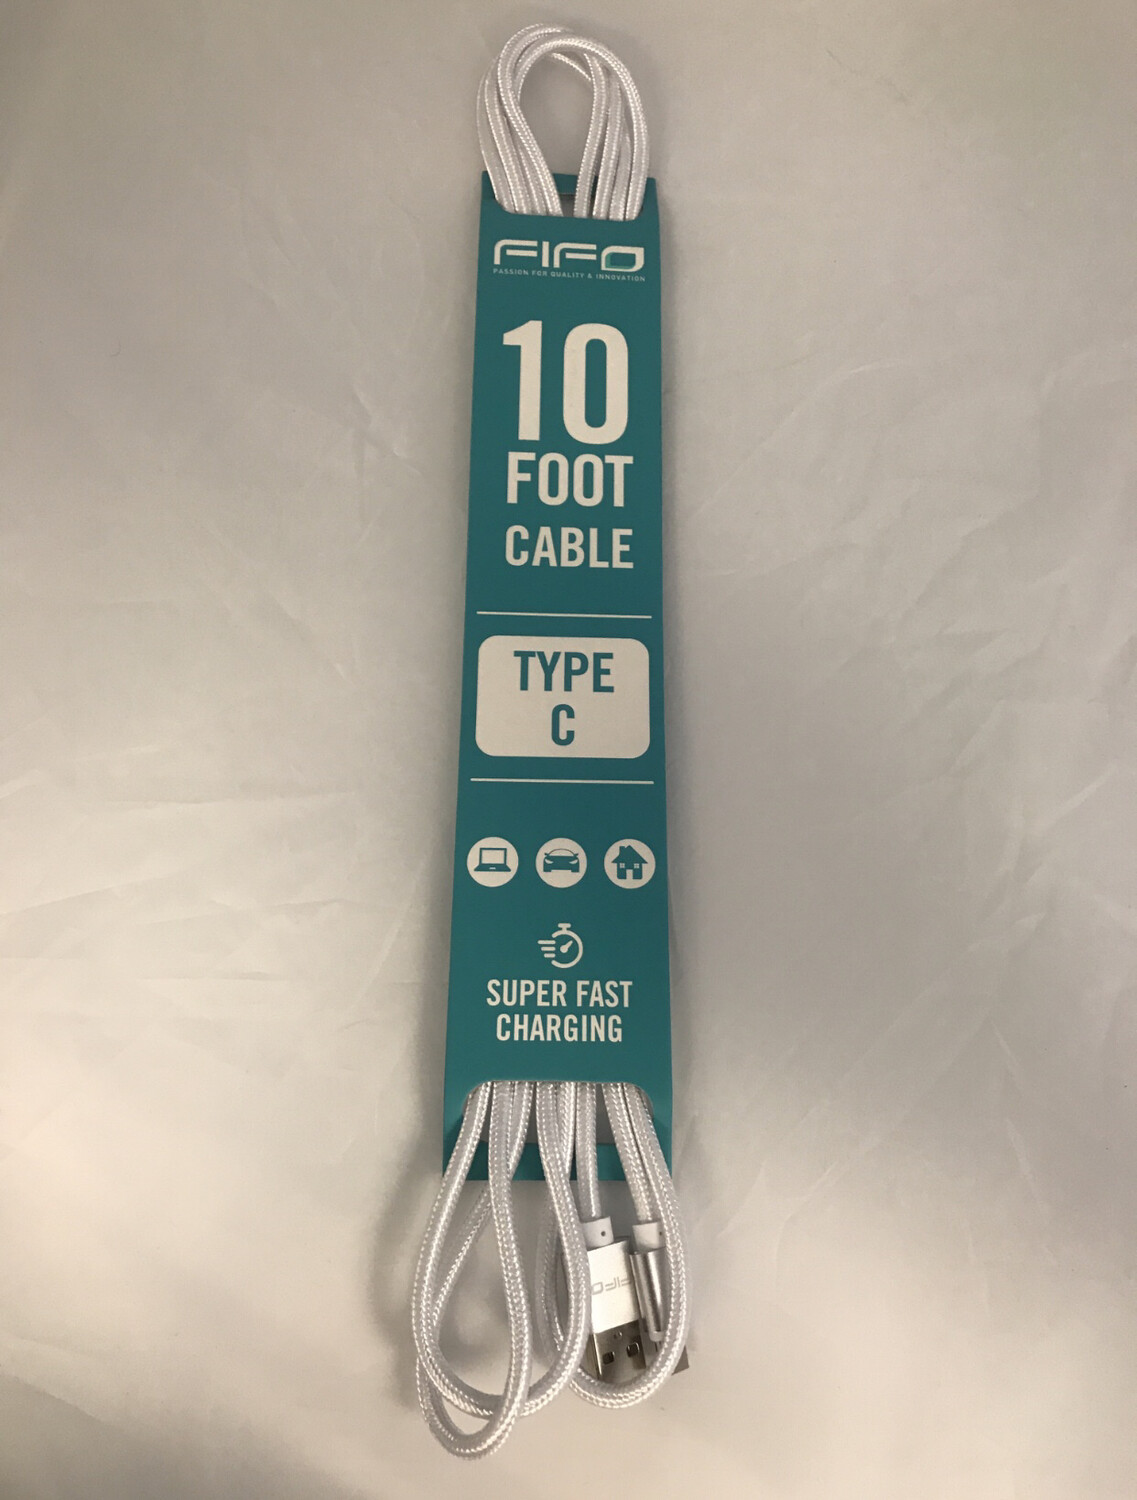 47222 10FT TYPE C CABLE SUPER FAST CHARGING